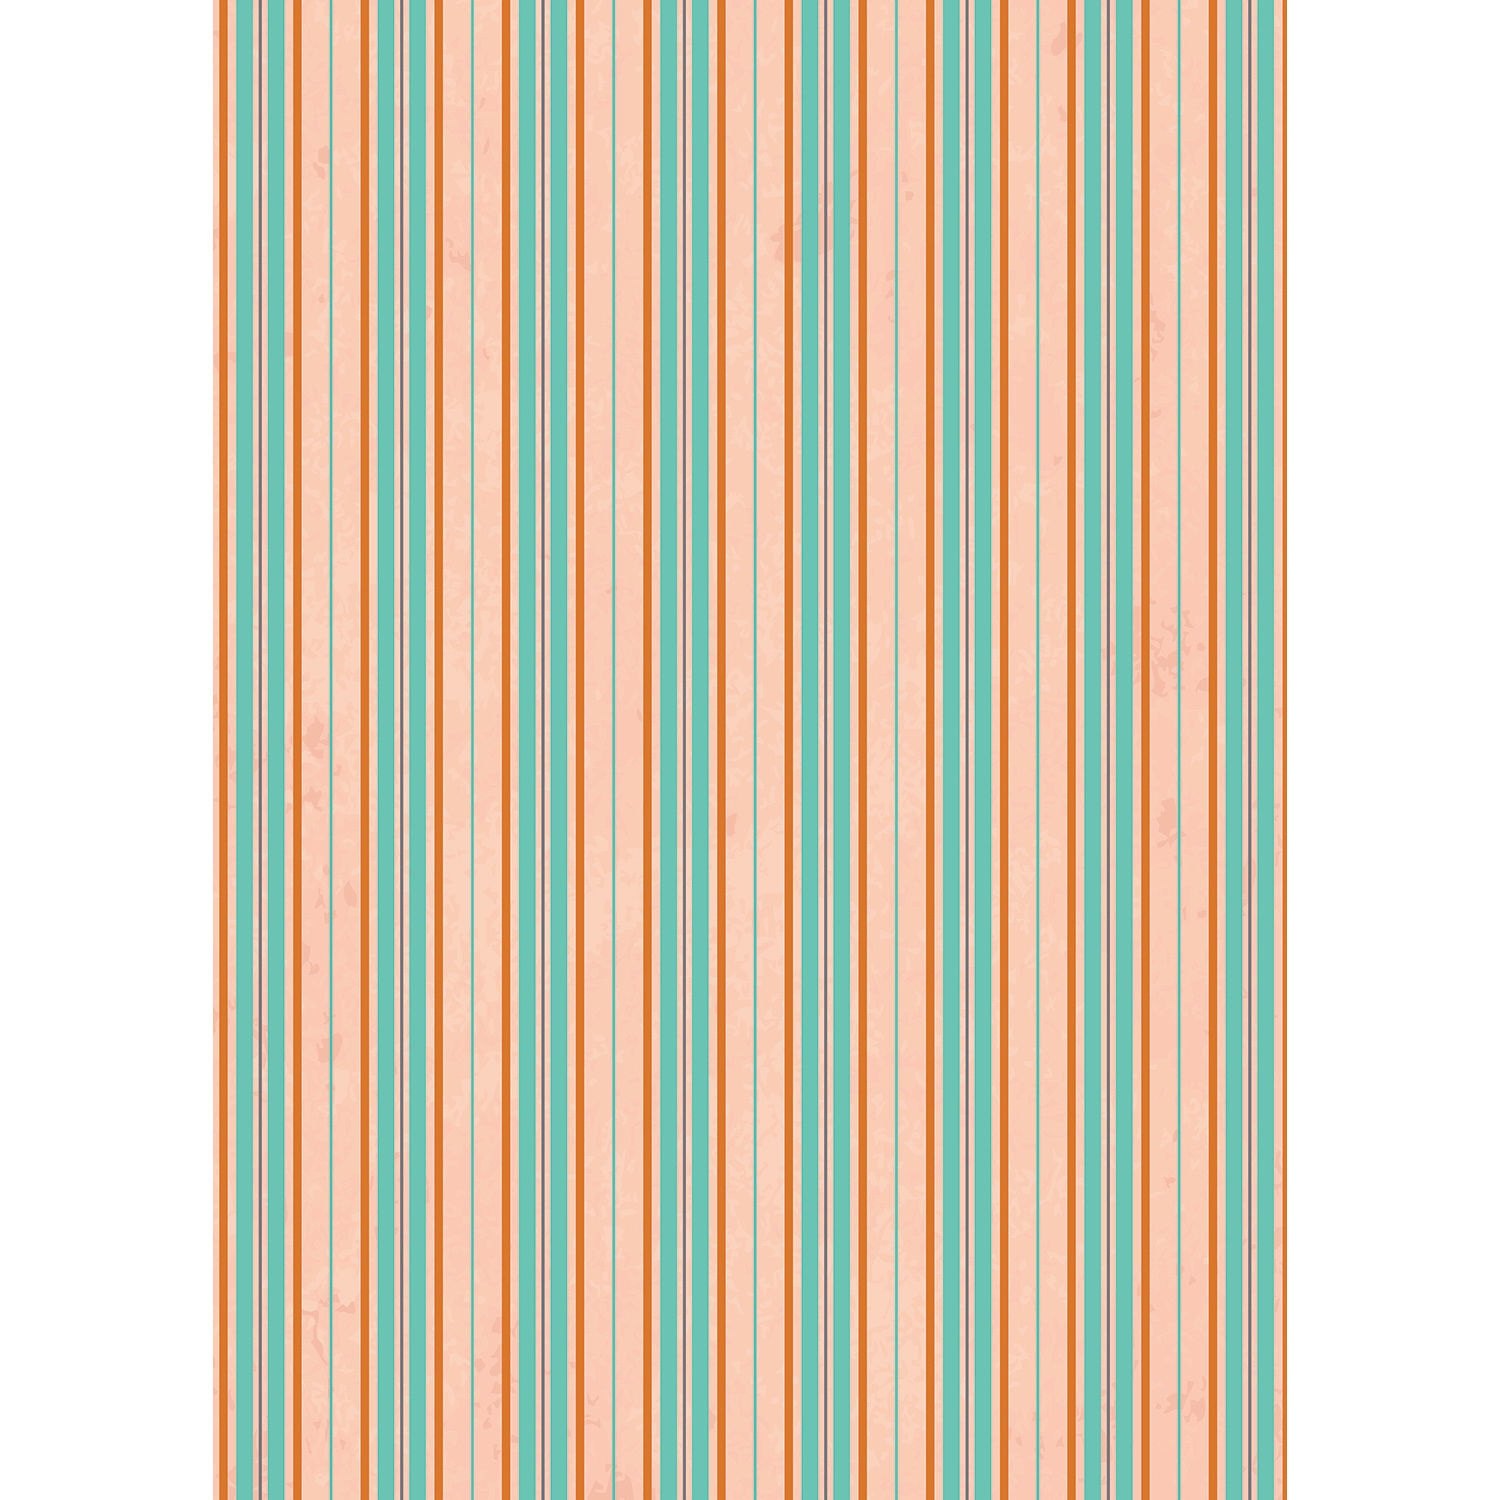 Westcott Striped Wallpaper Matte Vinyl D0049 63x87 Vy Or Bh